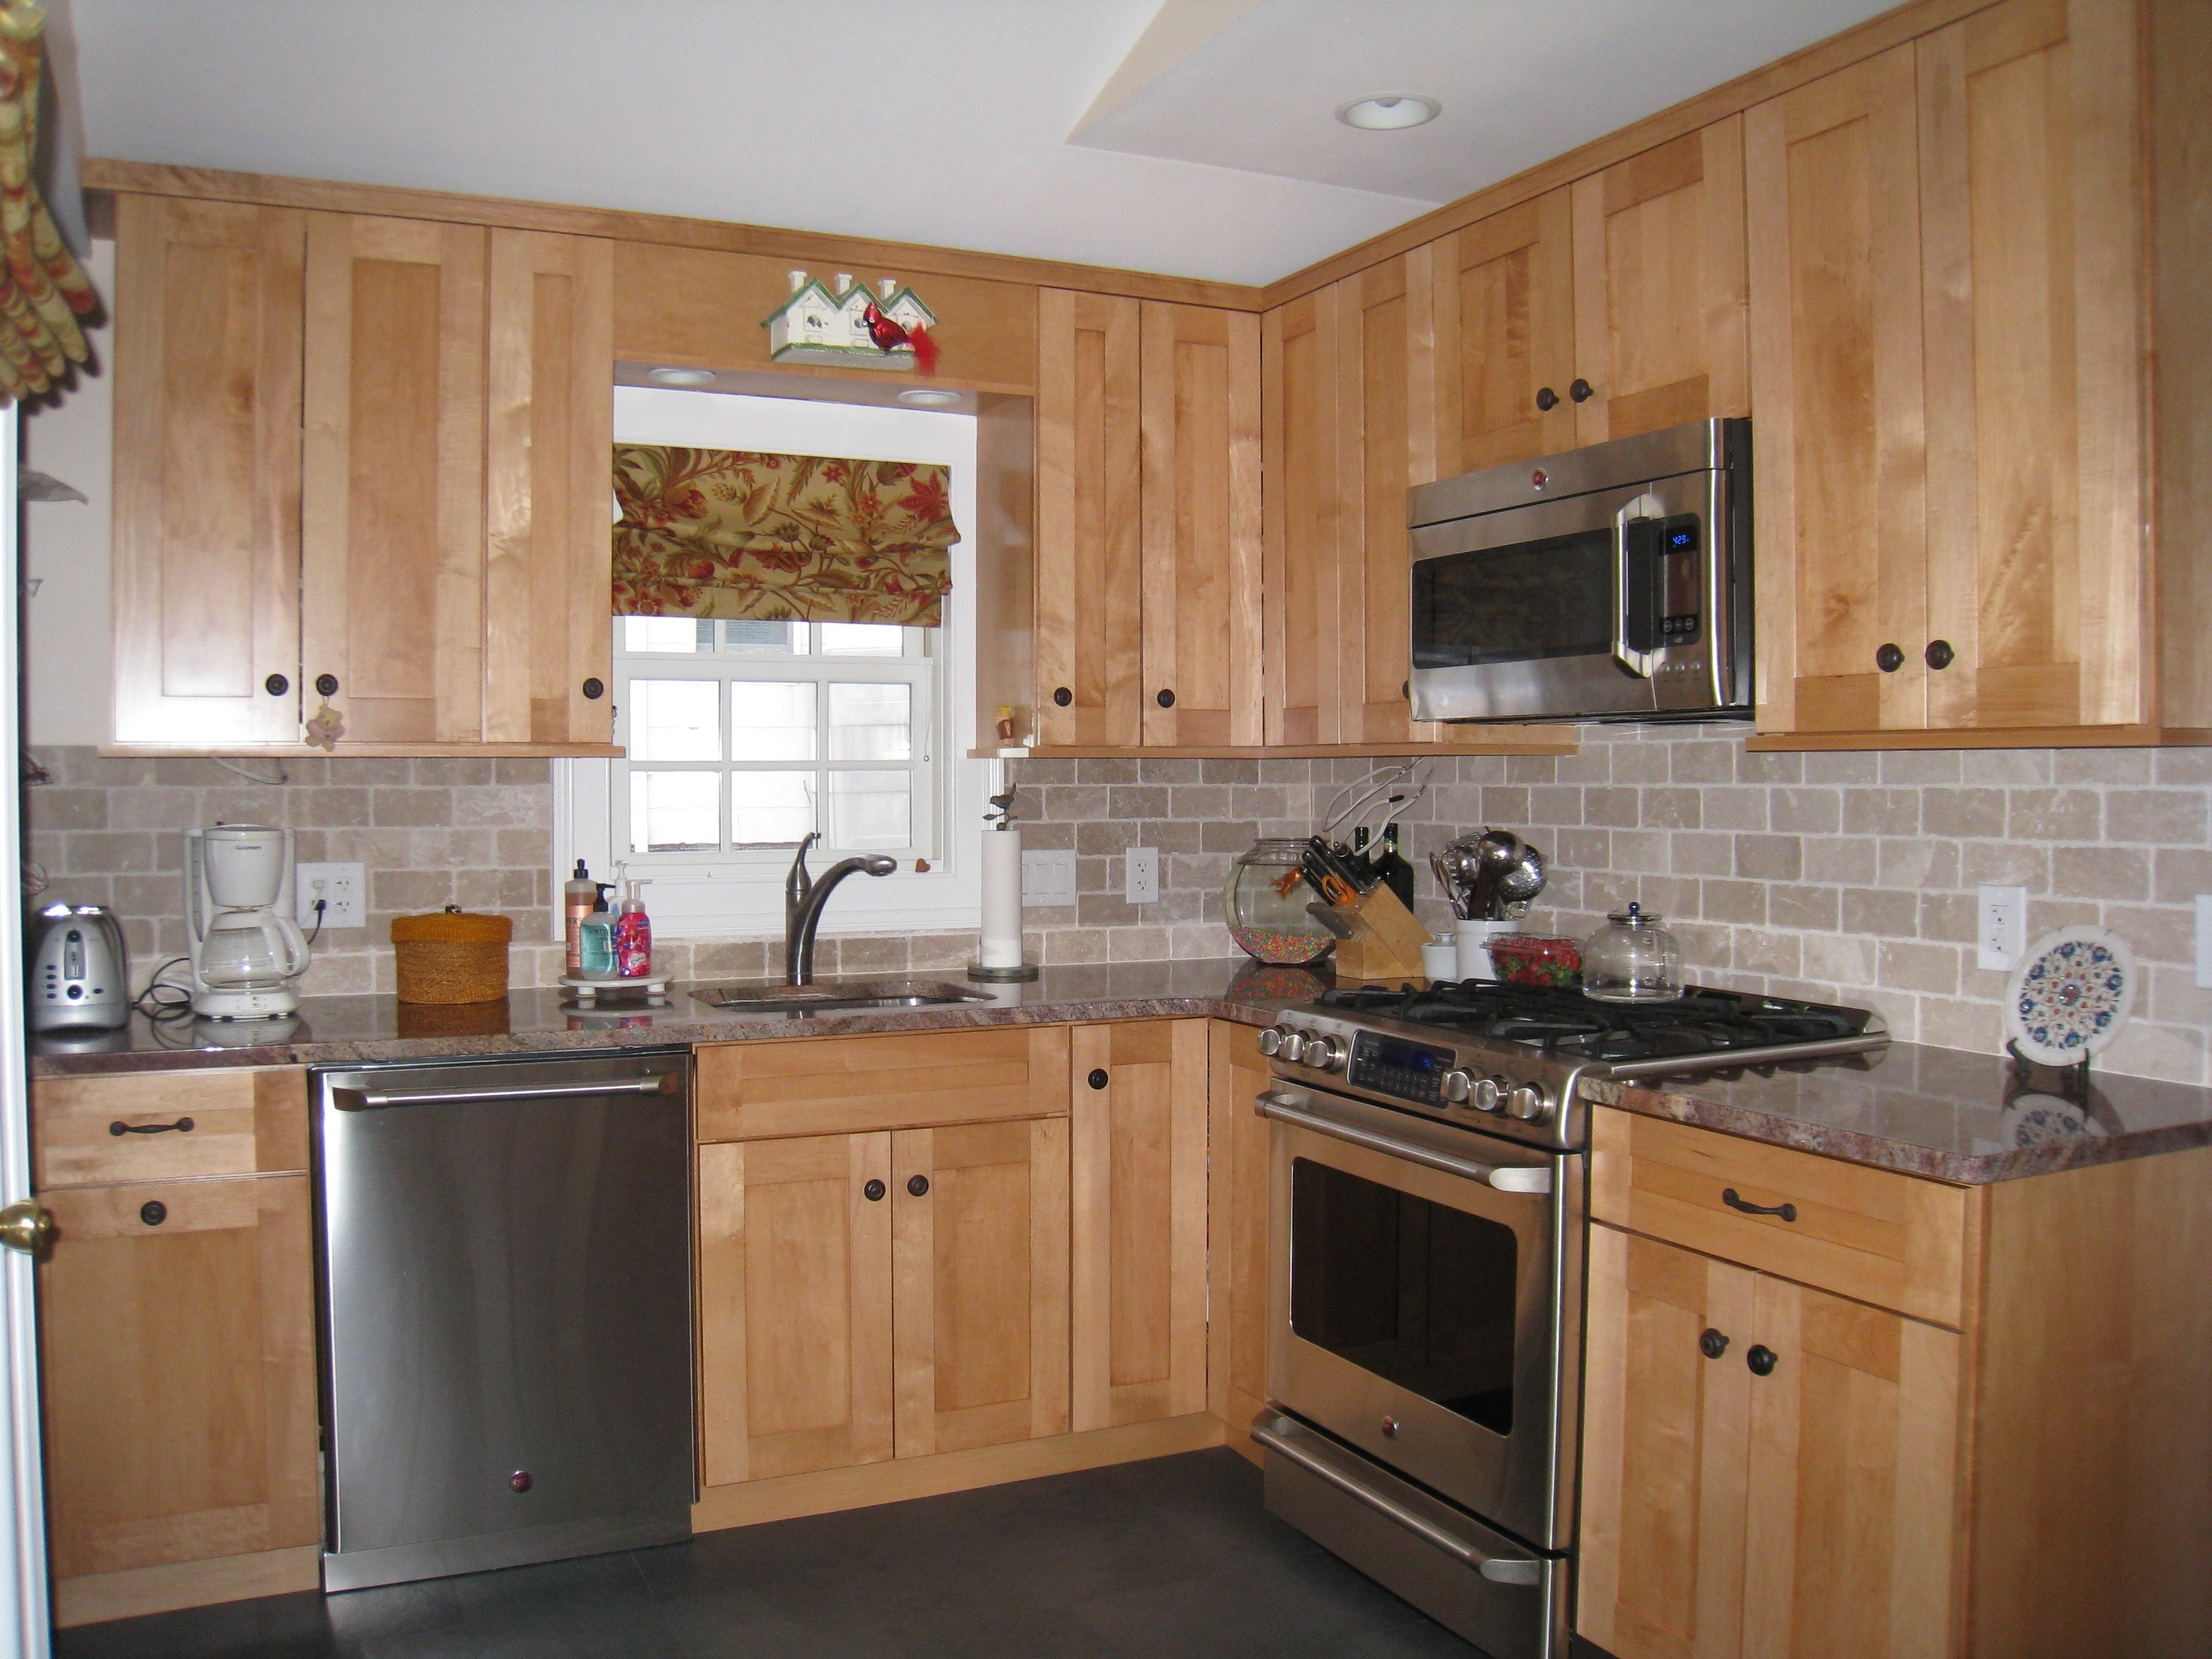 - Artistic Kitchen Backsplash Gallery Of Subway Tile Decor Best